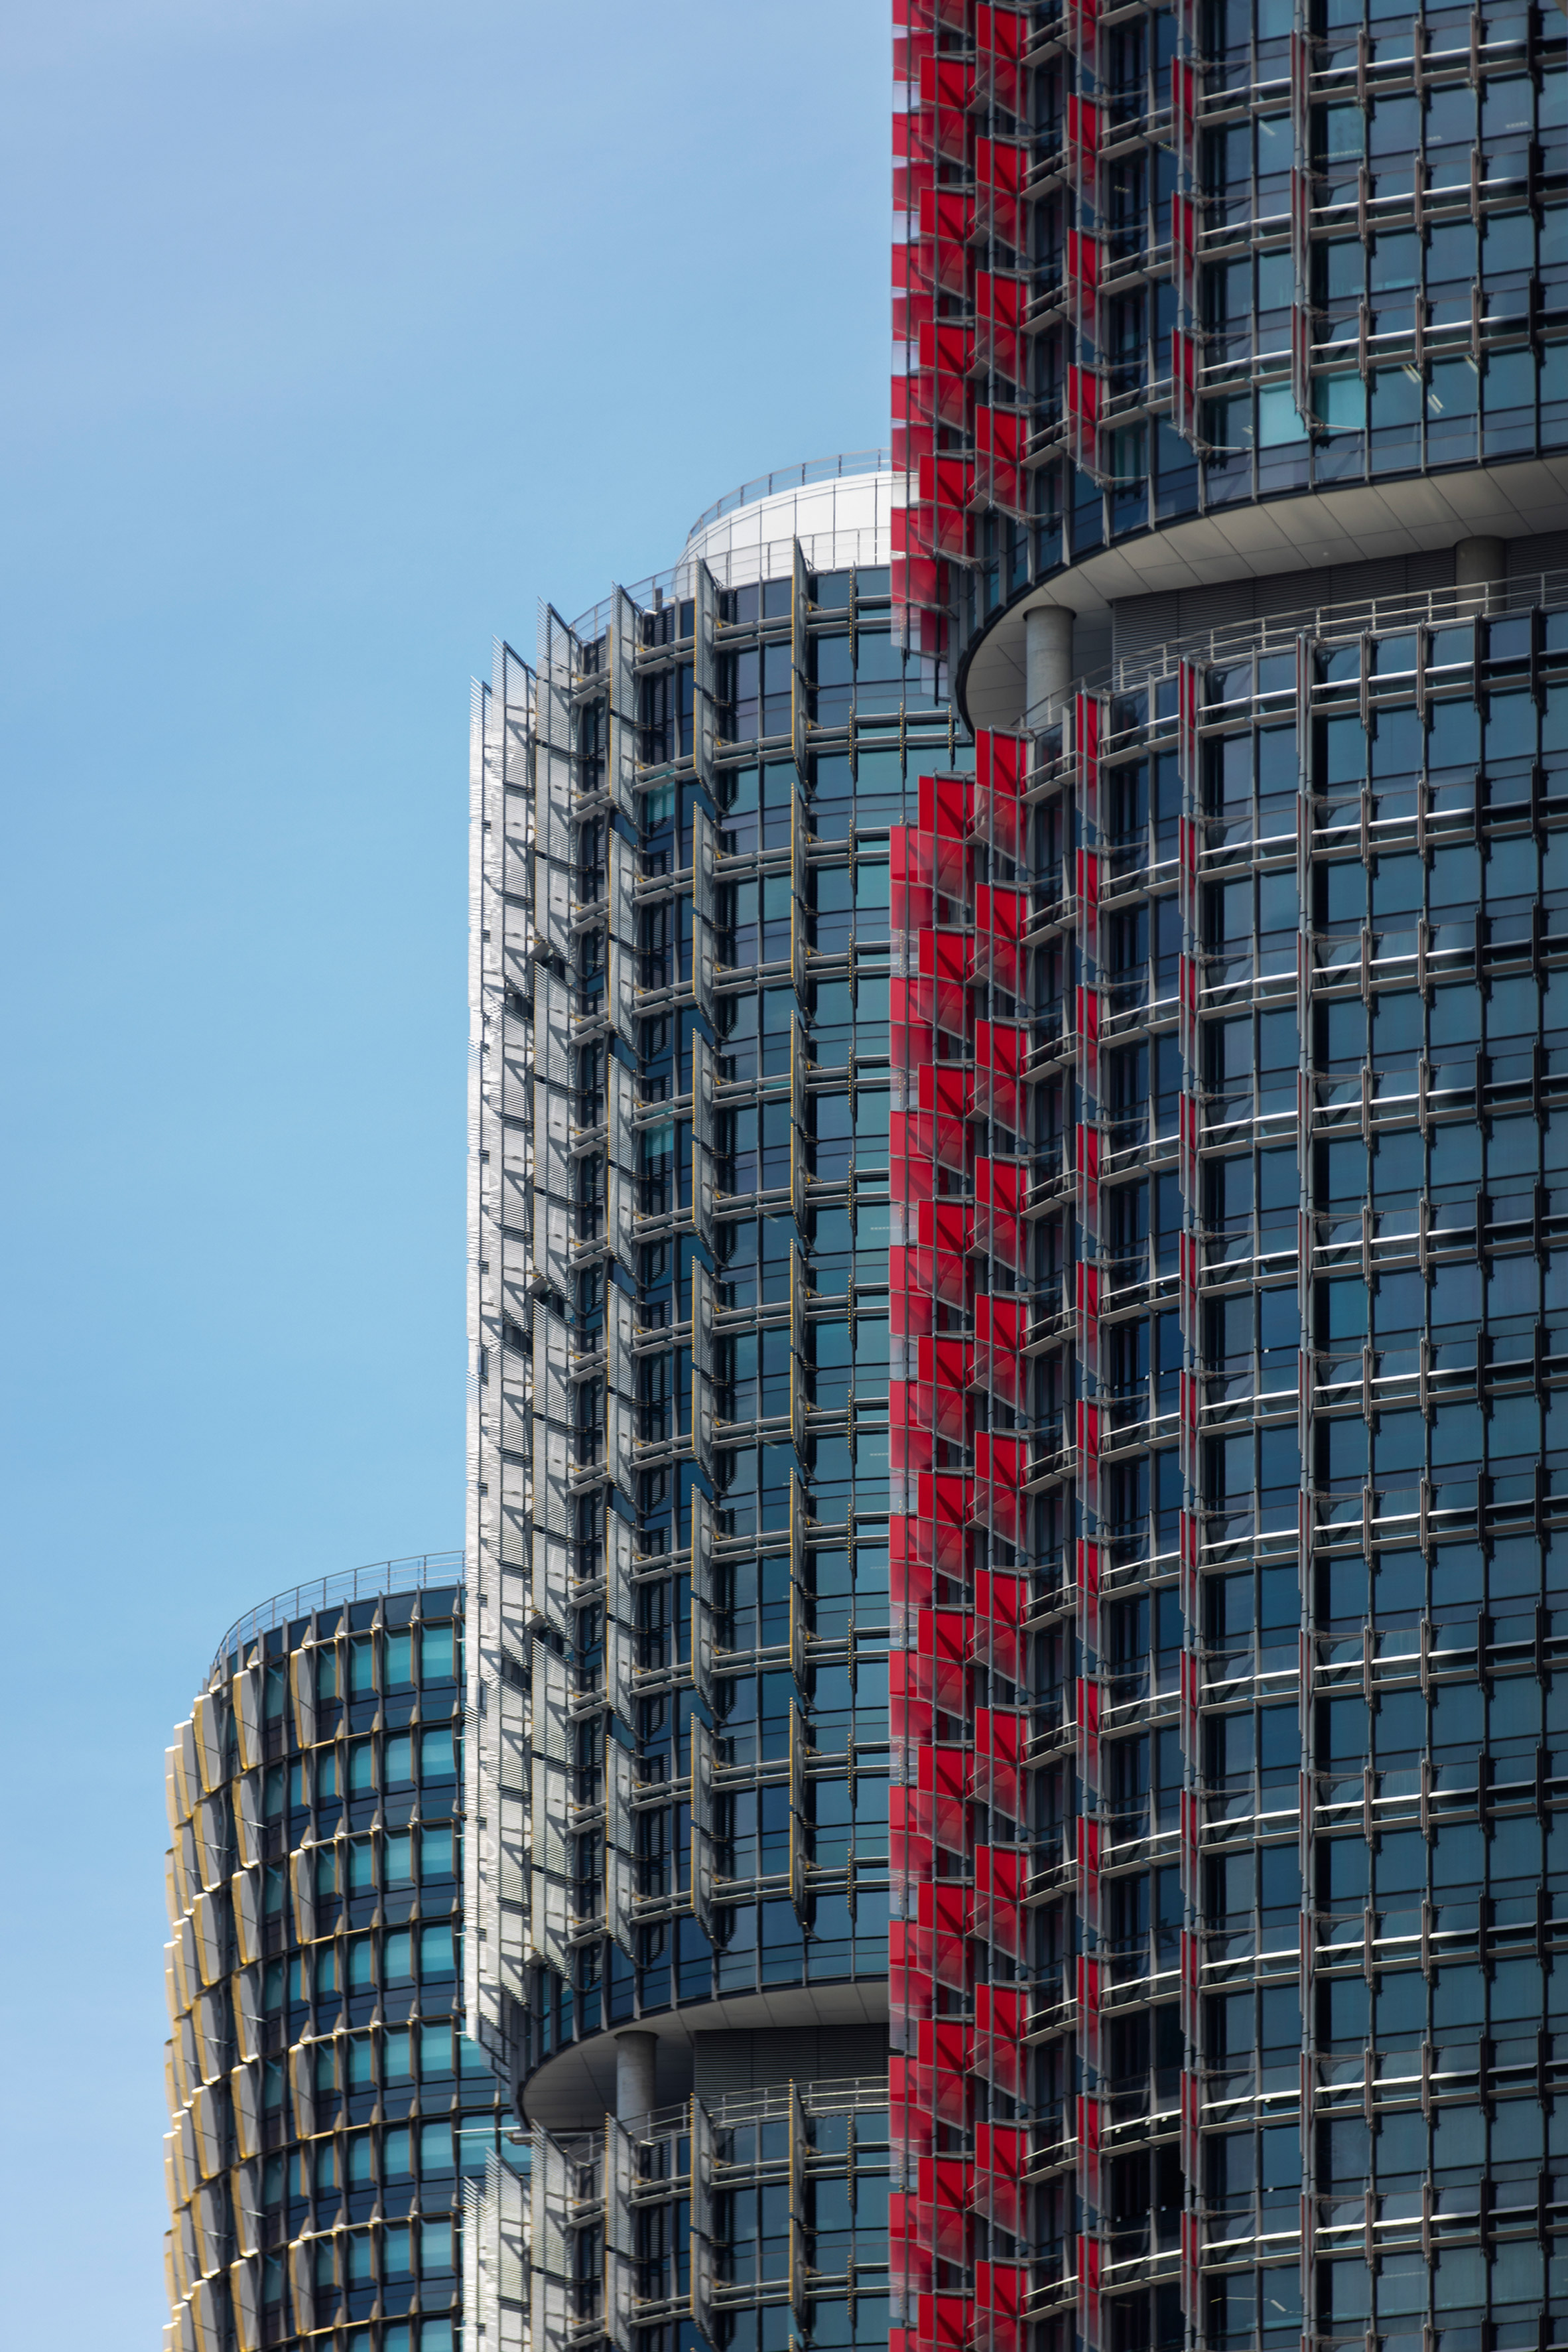 Rogers Stirk Harbour completes skyscraper trio on Sydney's Barangaroo waterfront